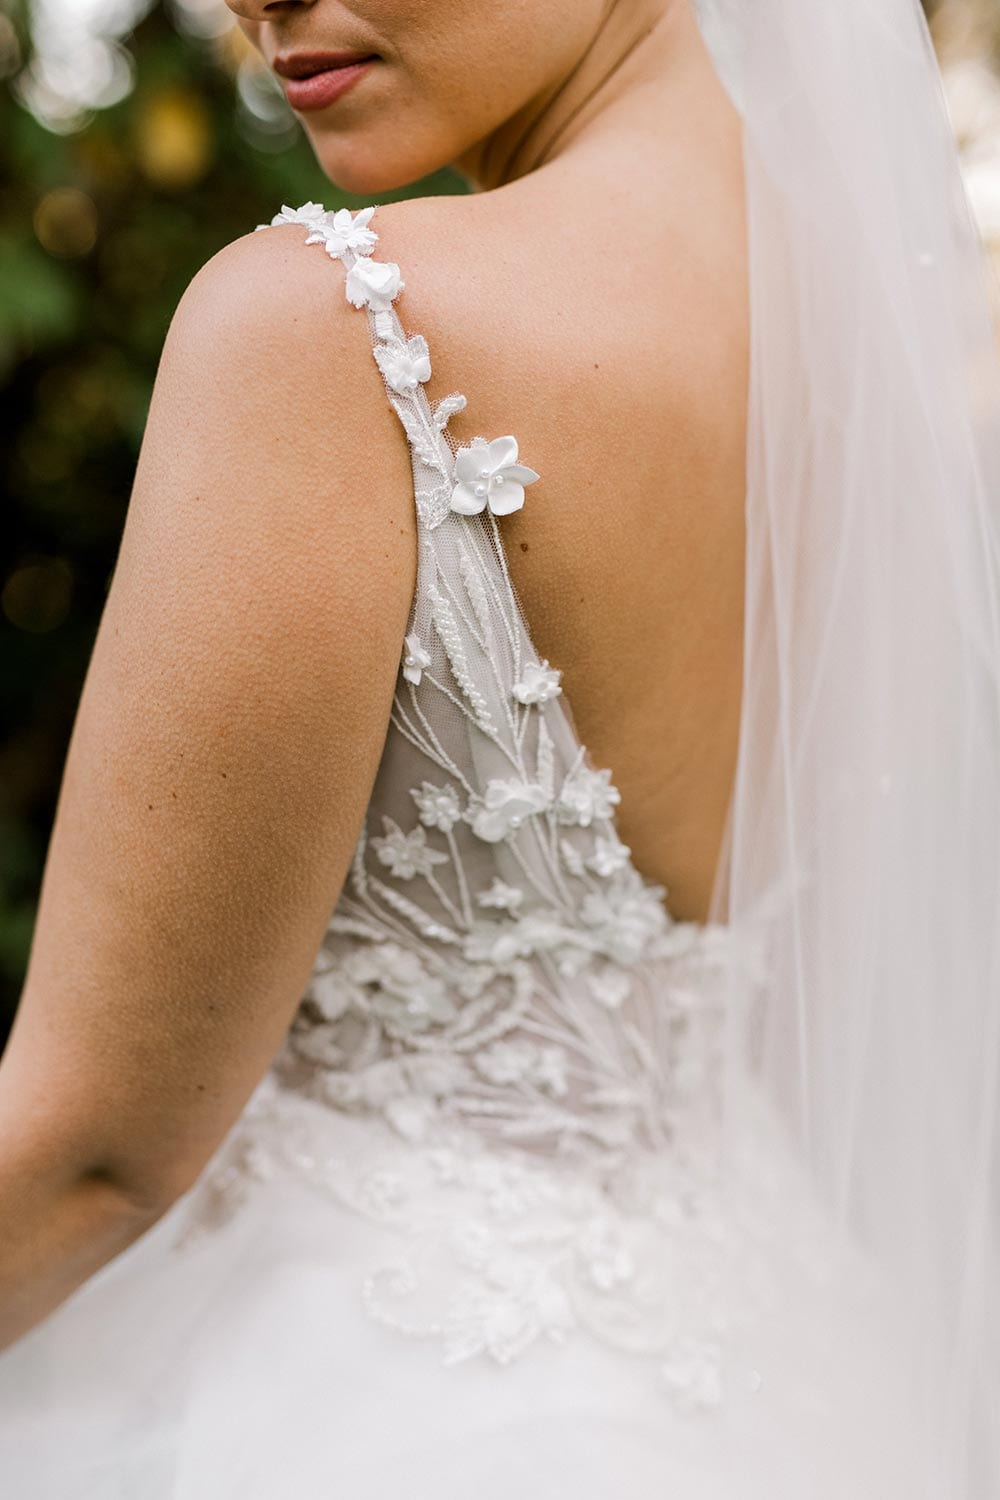 Serena Wedding Gown from Vinka Design - Classic & feminine wedding gown. Deep V-neckline semi-sheer structured bodice appliqued with flowers & leaves. Dreamy layered soft tulle skirt with side-split. Close up detail of bodice and straps. Photograph in landscaped gardens.